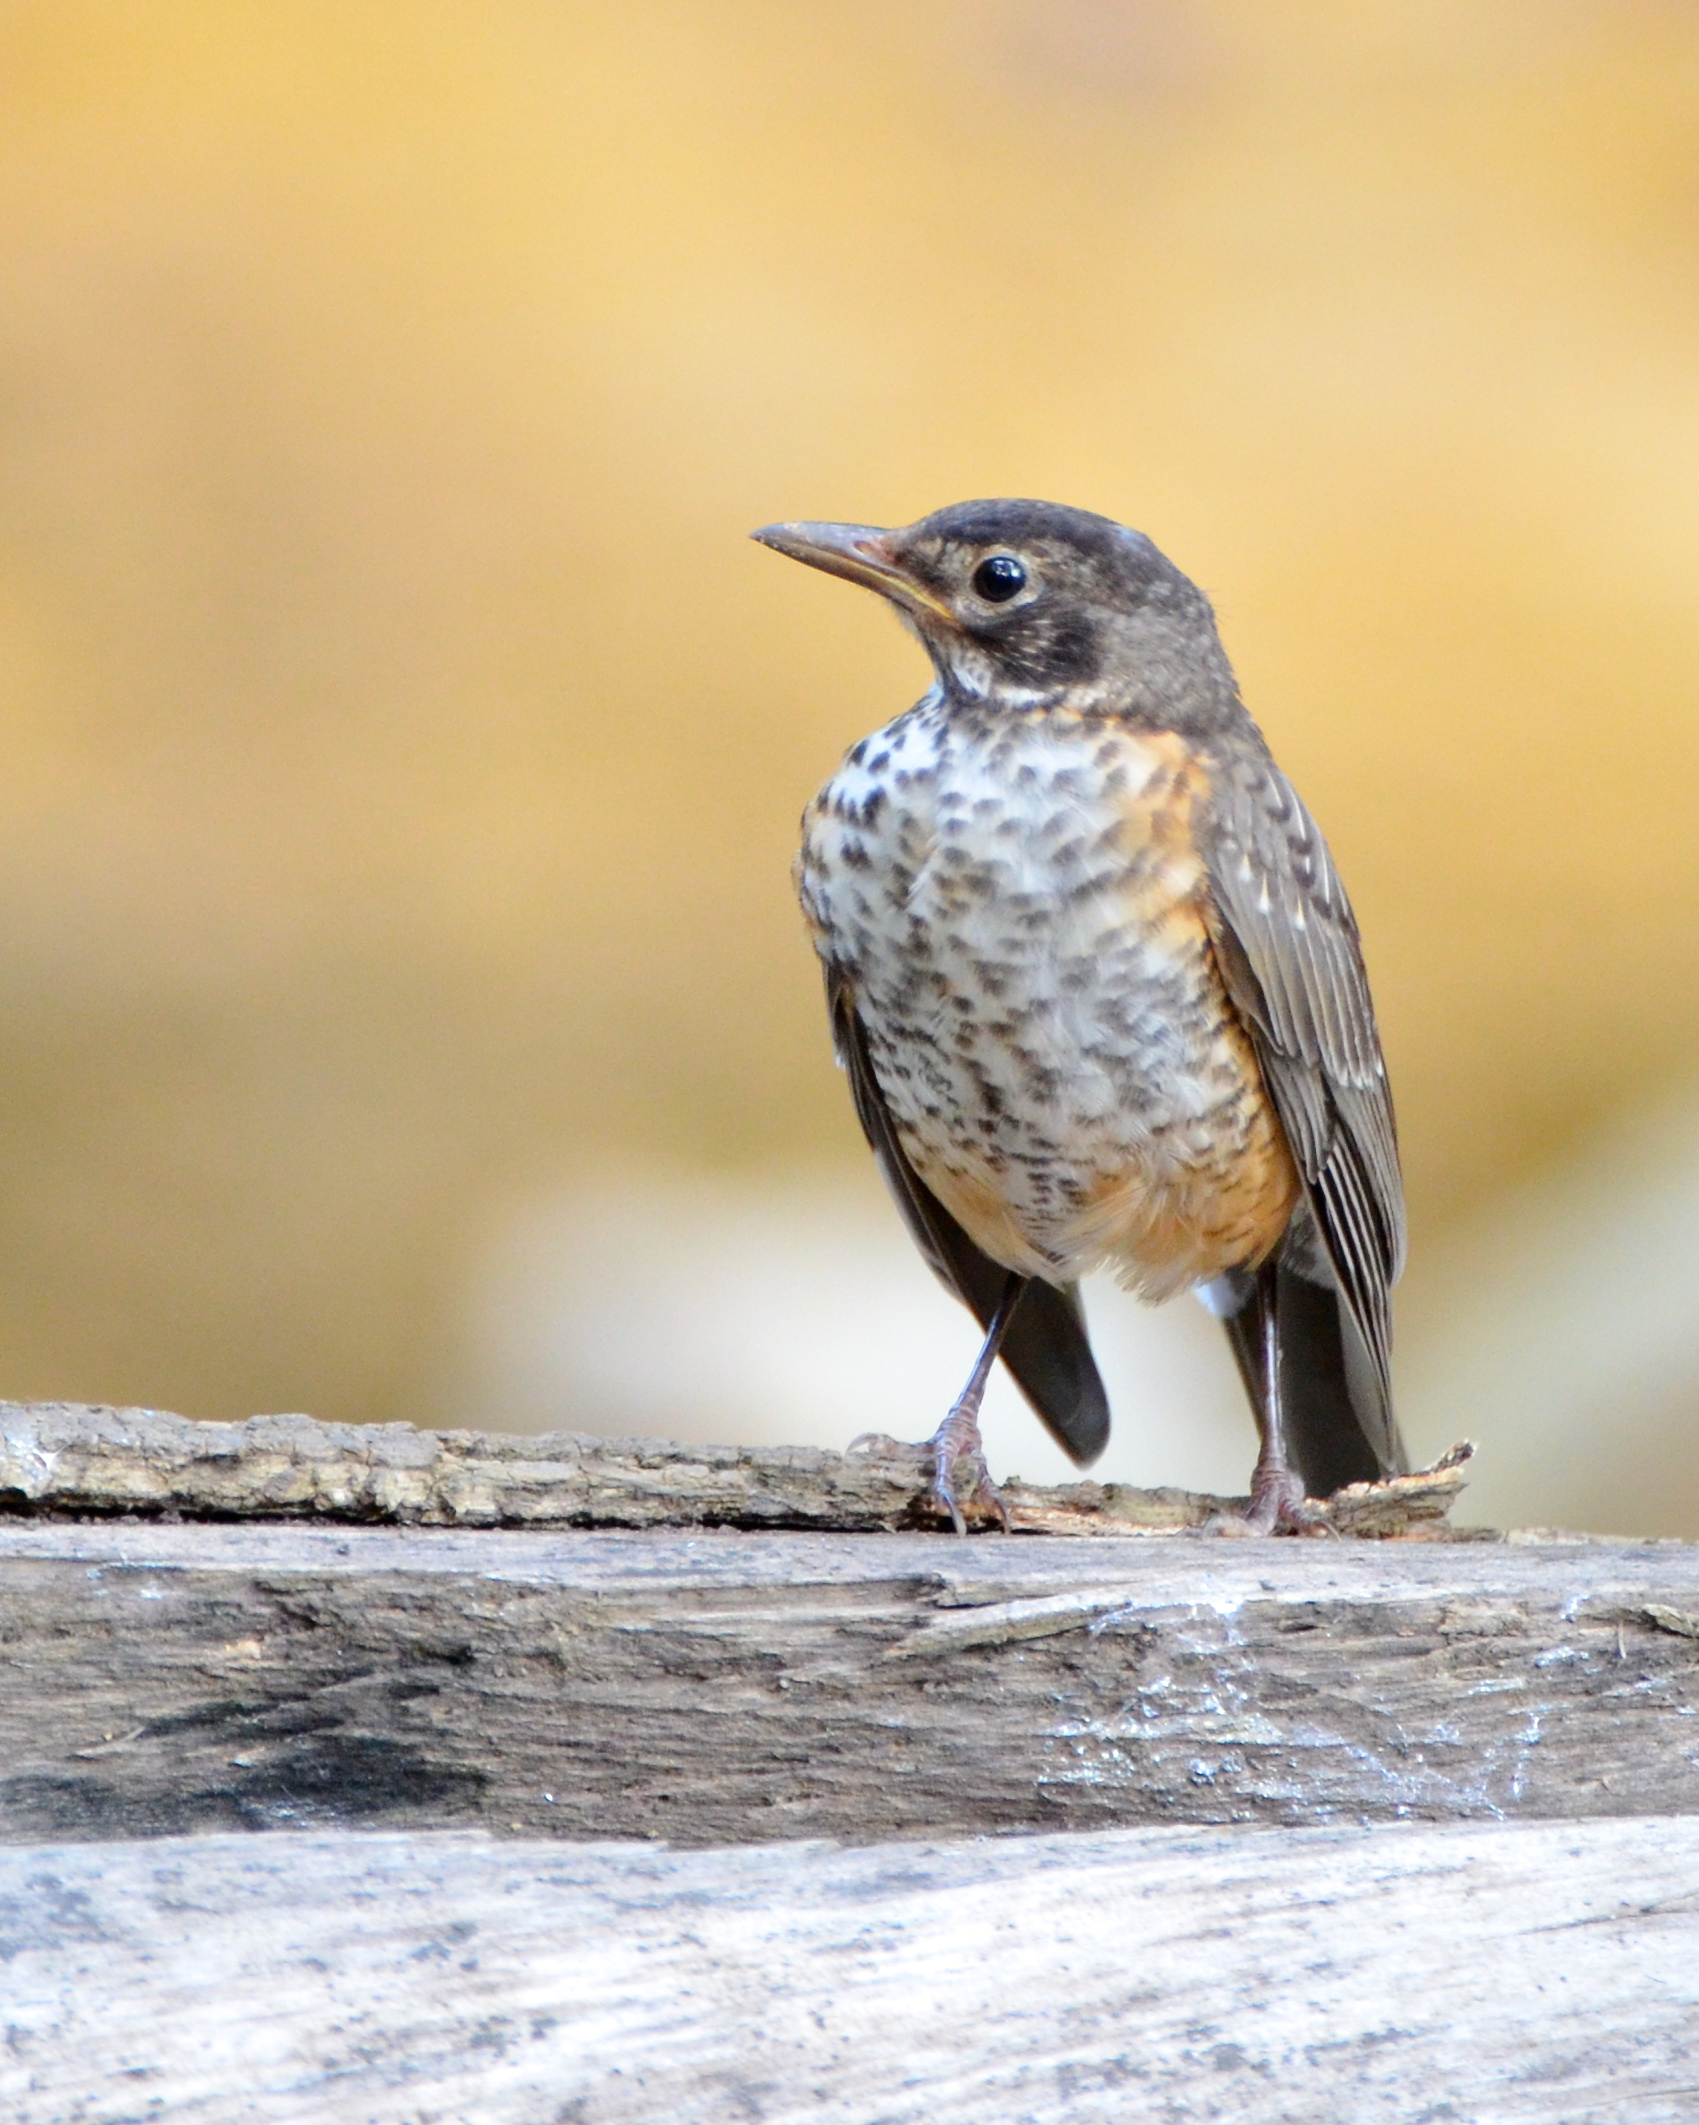 The young robin.